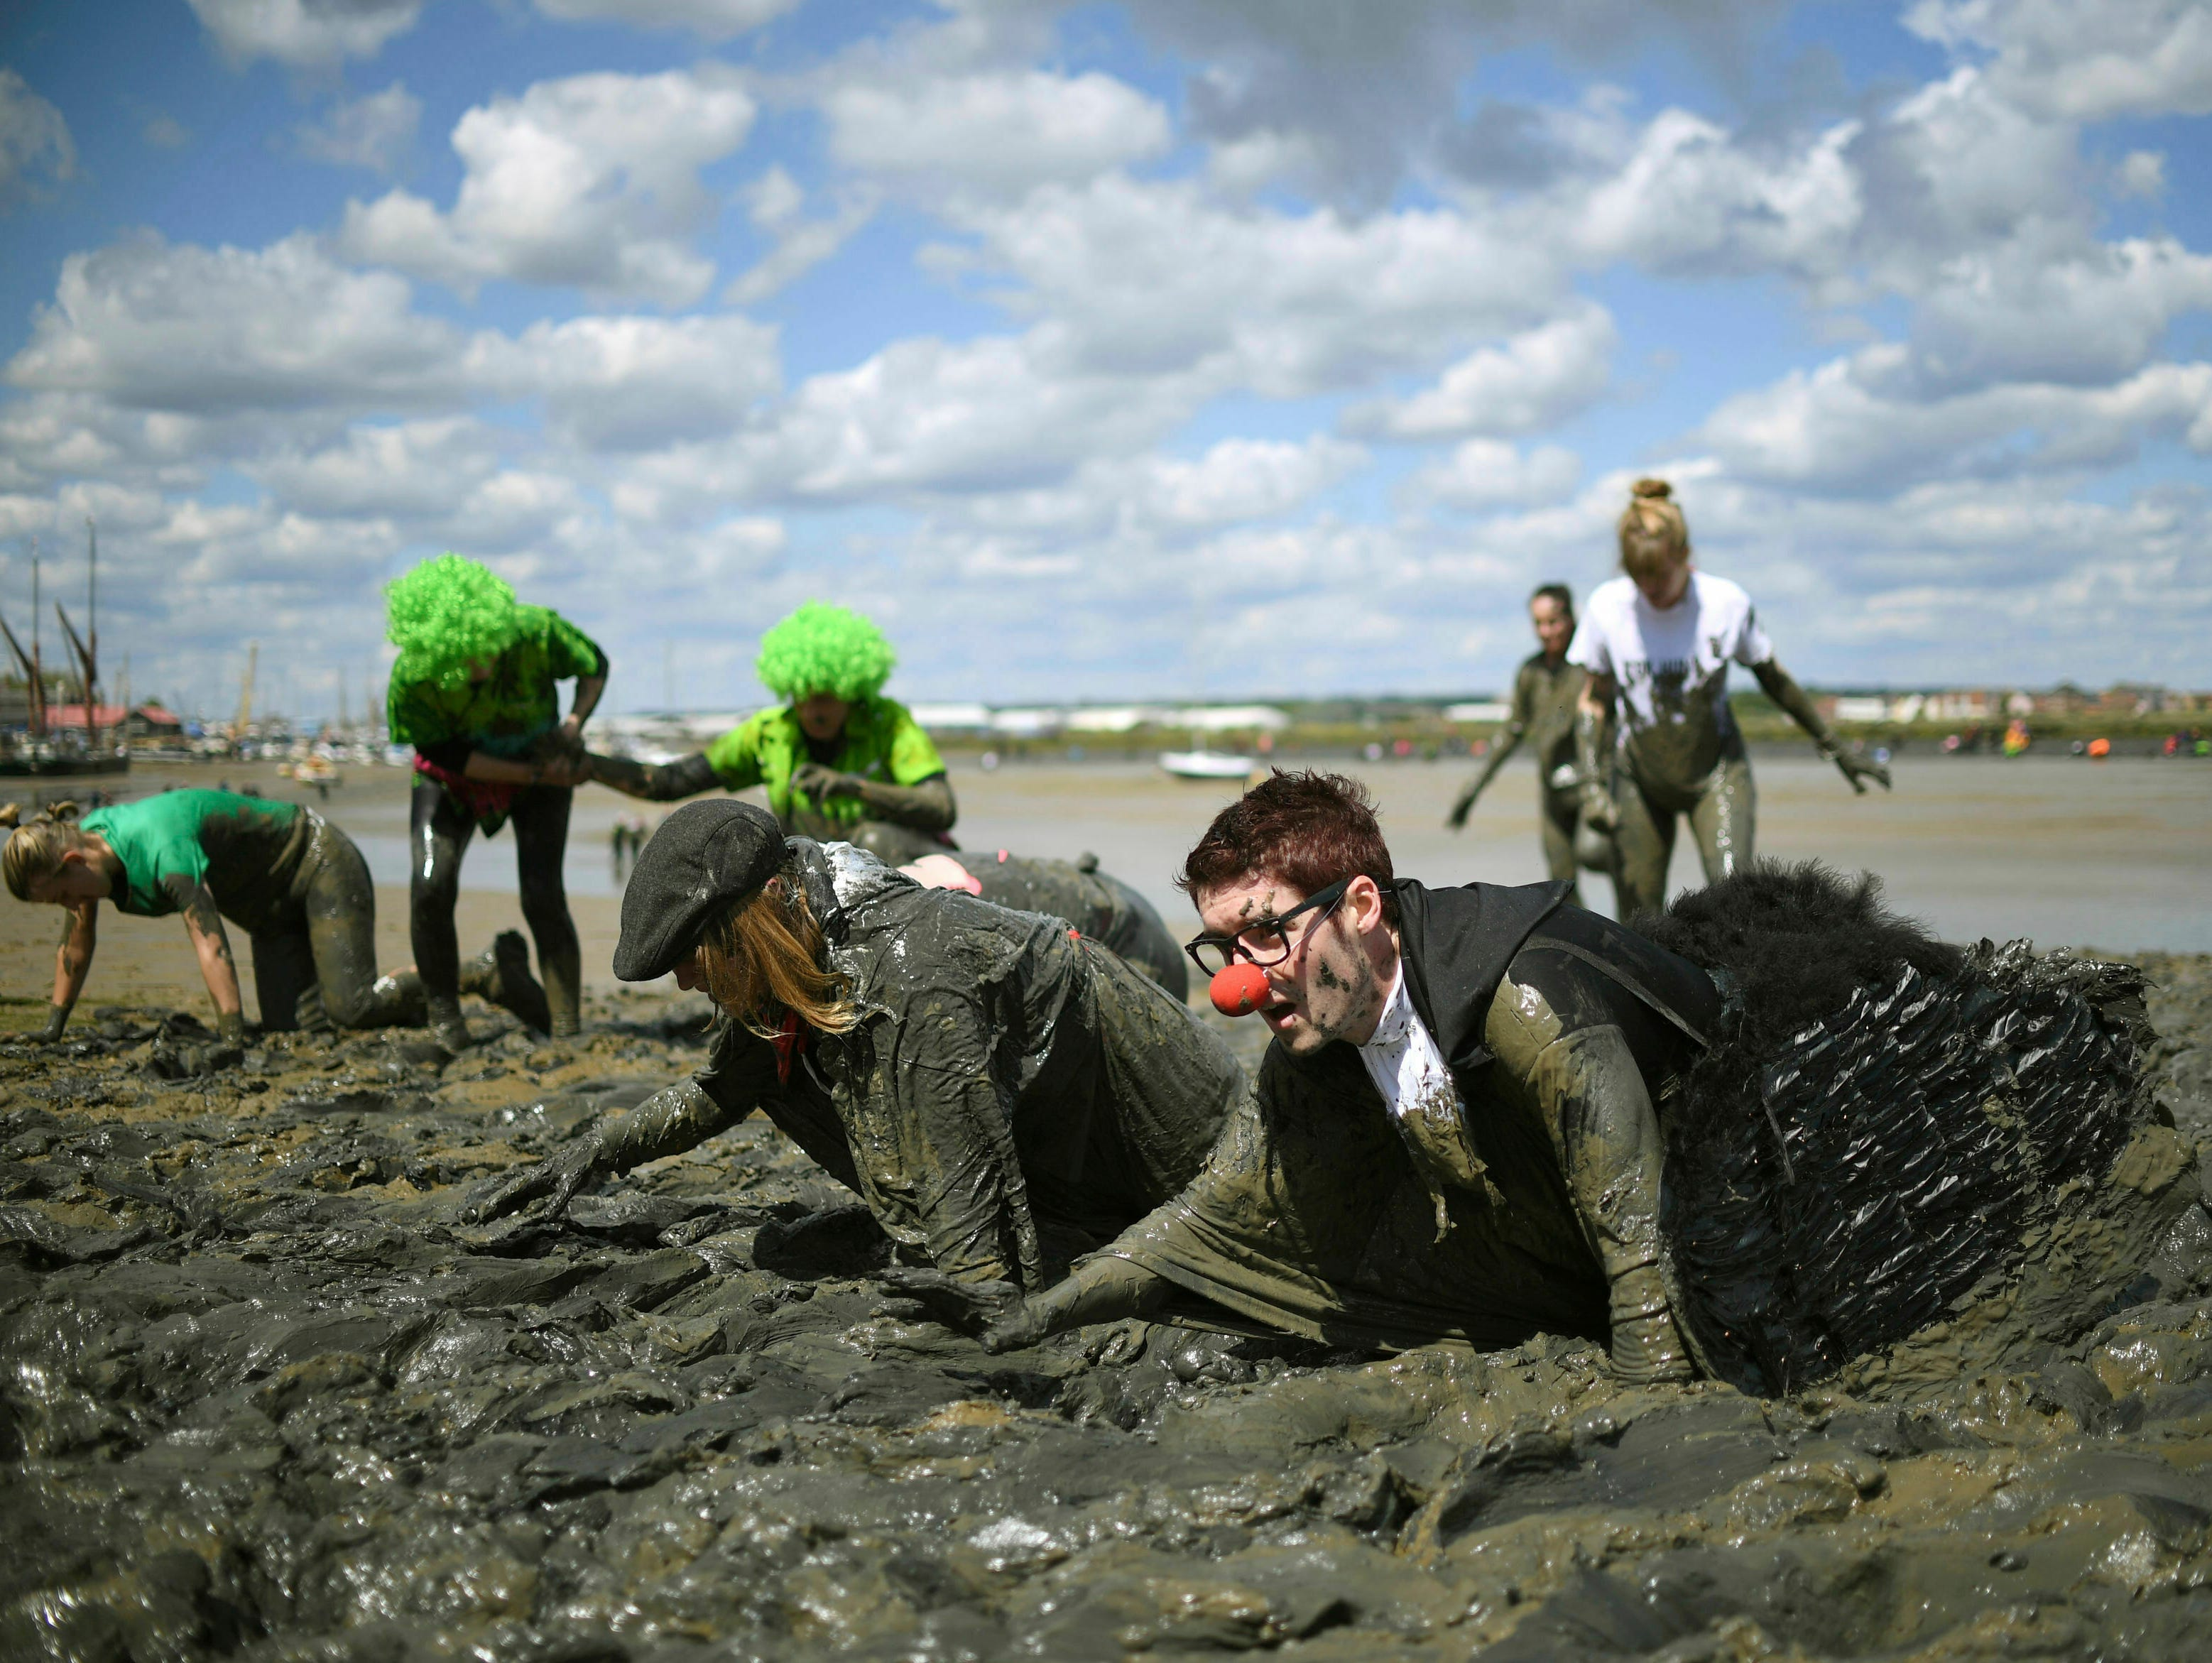 Competitors takes part in the annual Maldon Mud Race, a charity event to race across the bed of the River Blackwater in Maldon, southern England. Sunday May 12, 2019.